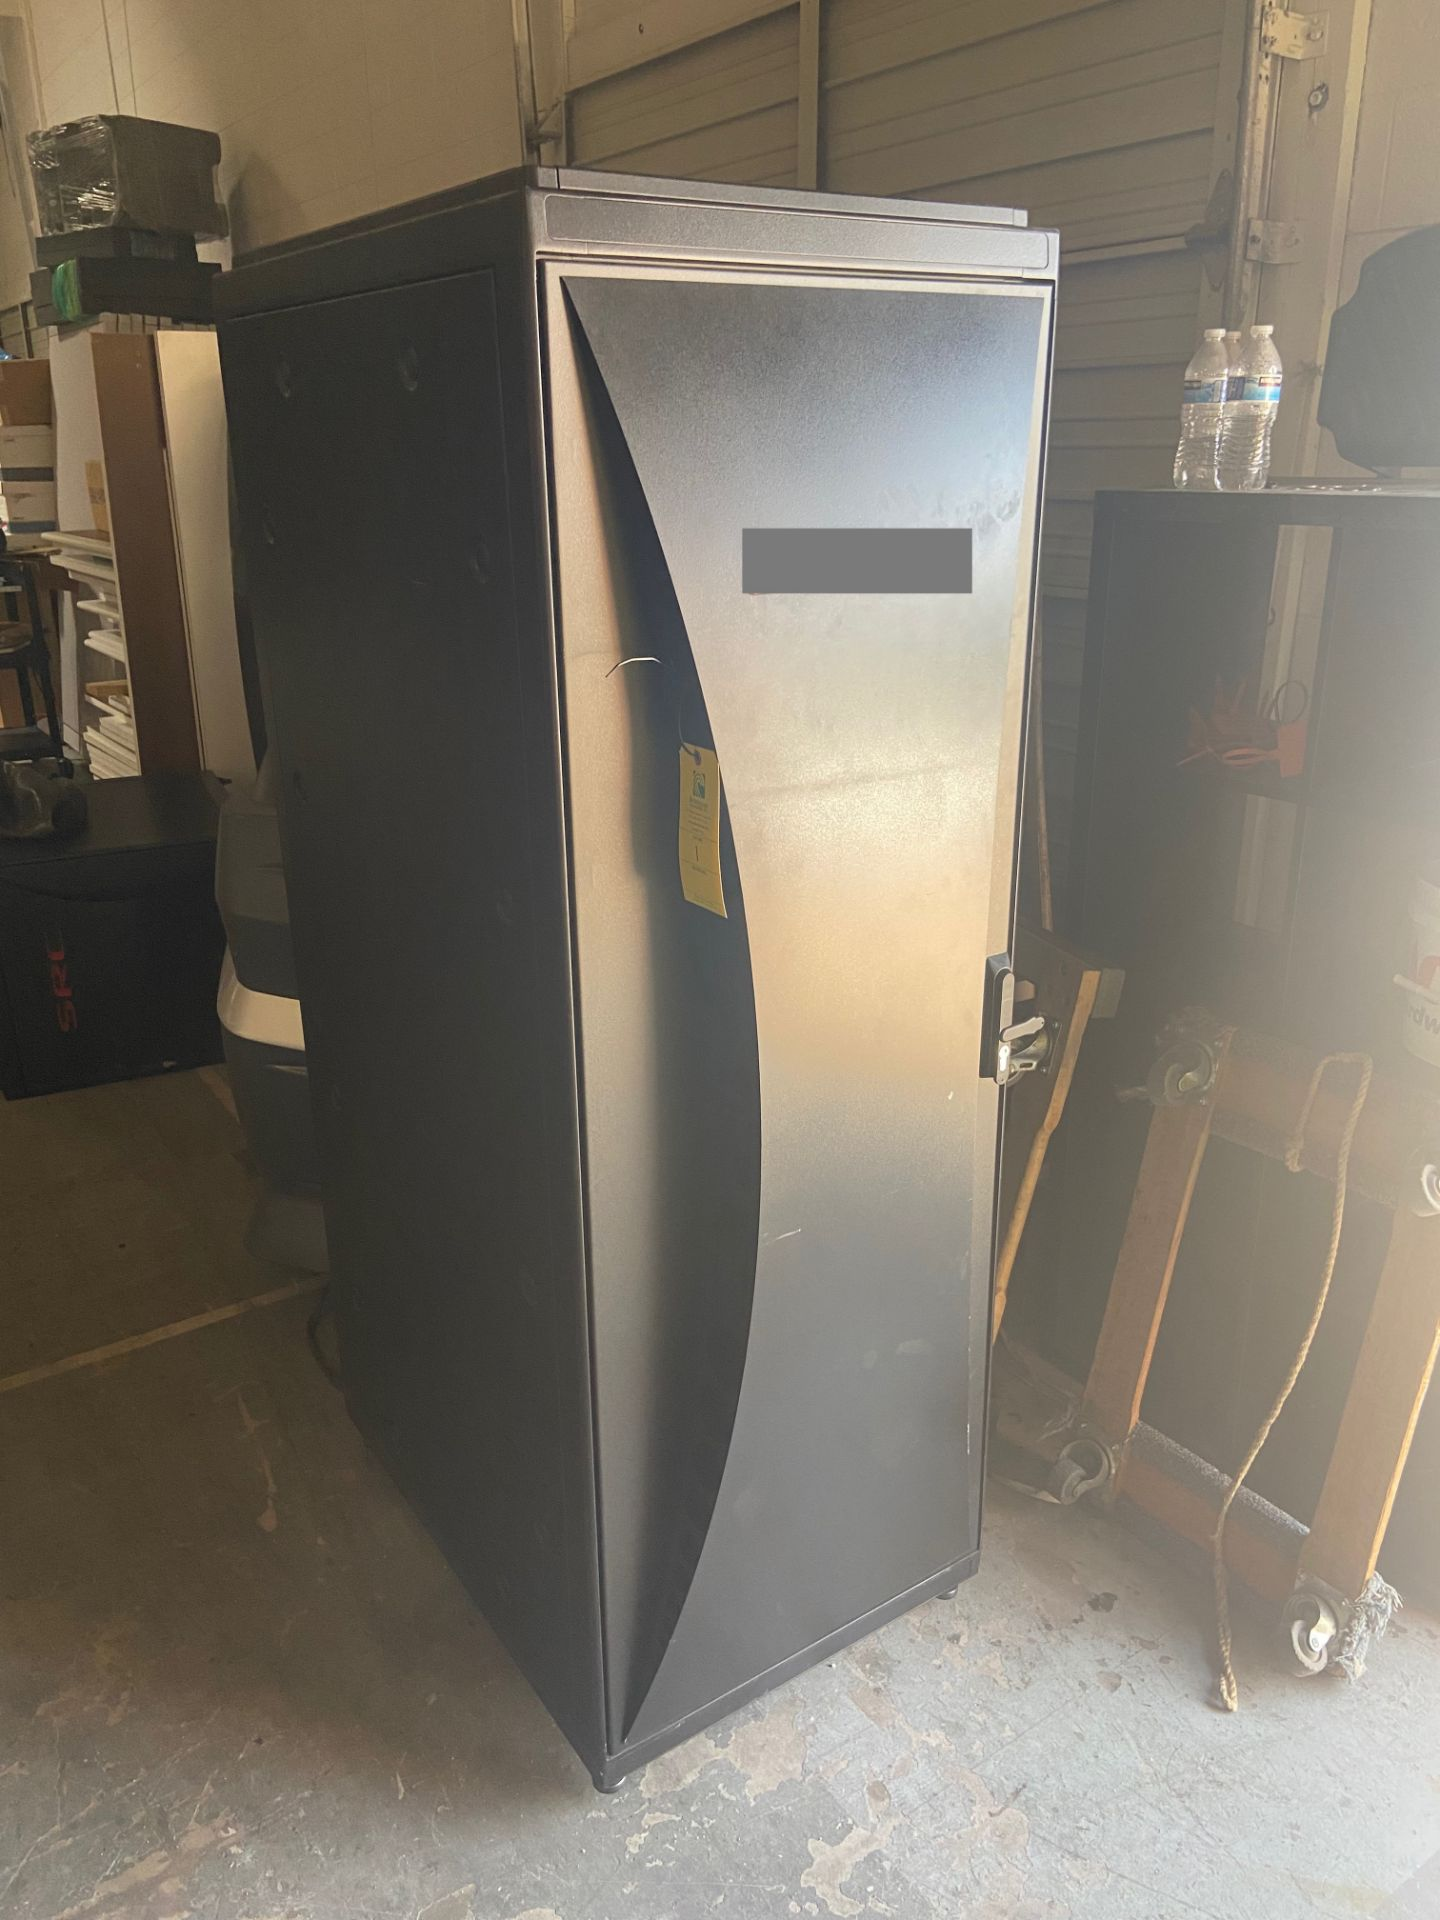 """Network Server Data Rack Enclosure Cabinet, 2' Wide x 33"""" Deep x 69"""" Tall, Loading/Removal Fee: $20 - Image 2 of 7"""